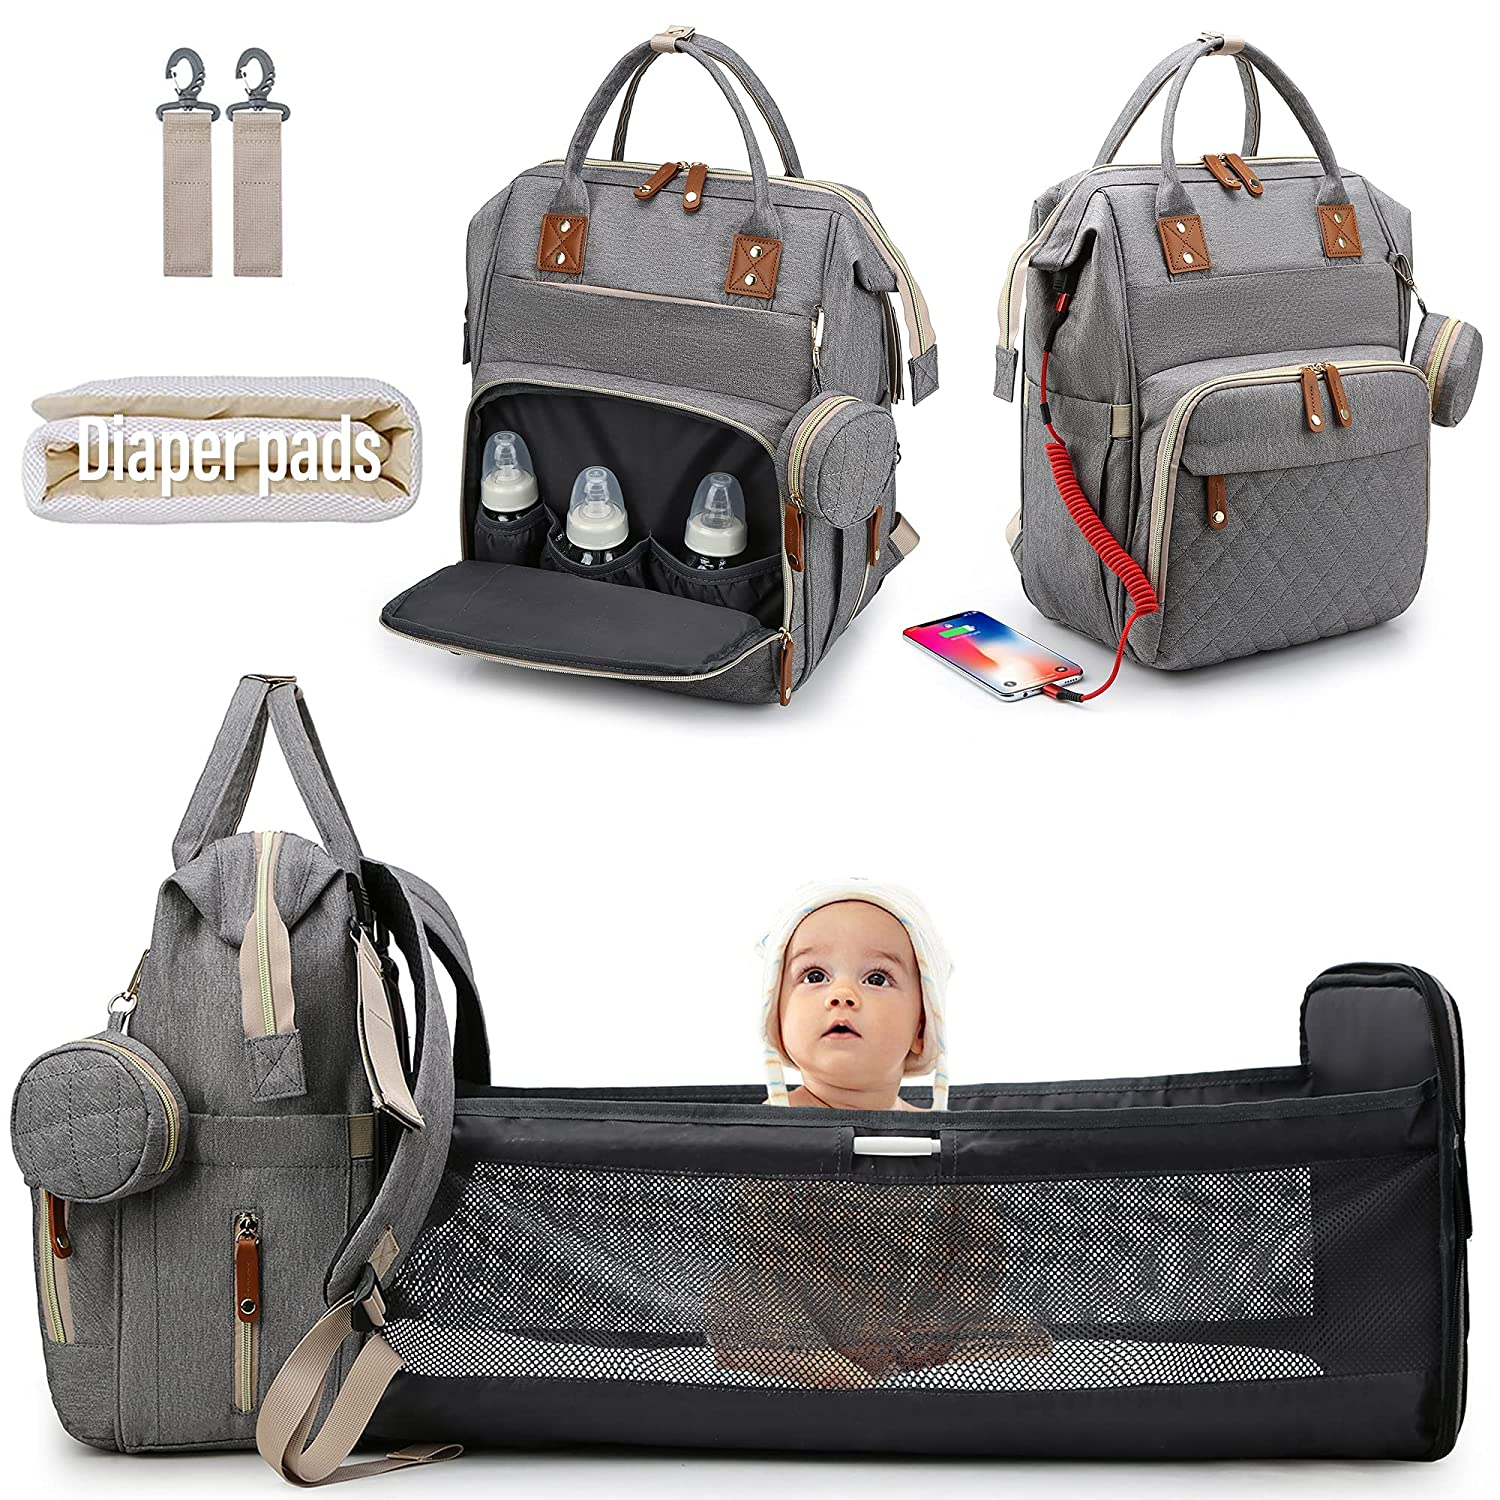 Diaper Bag Backpack for Baby Diaper Bag with Changing Station Portable Diaper Backpack Large Capacity Travel Foldable Baby Bed with USB Charge for Dad Mom Gift